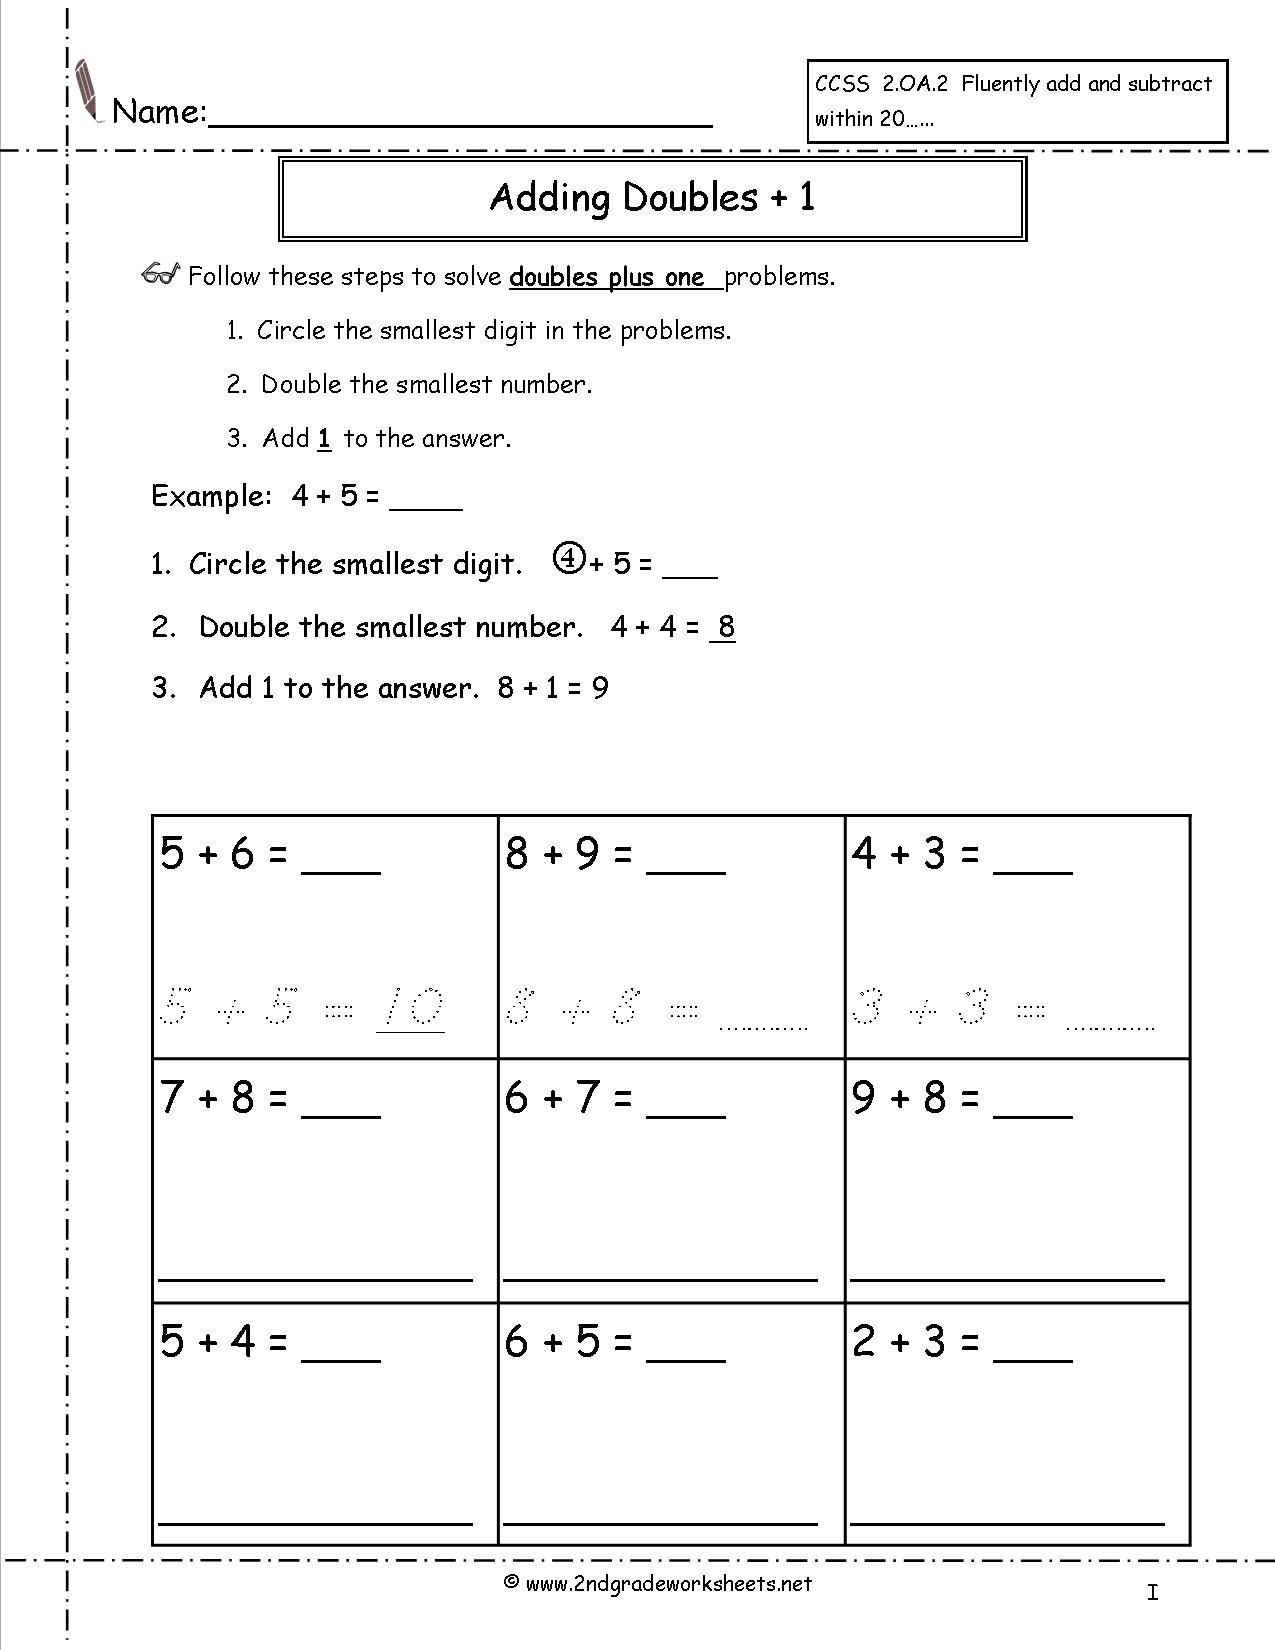 12 Best Images Of Doubles Plus One Worksheet